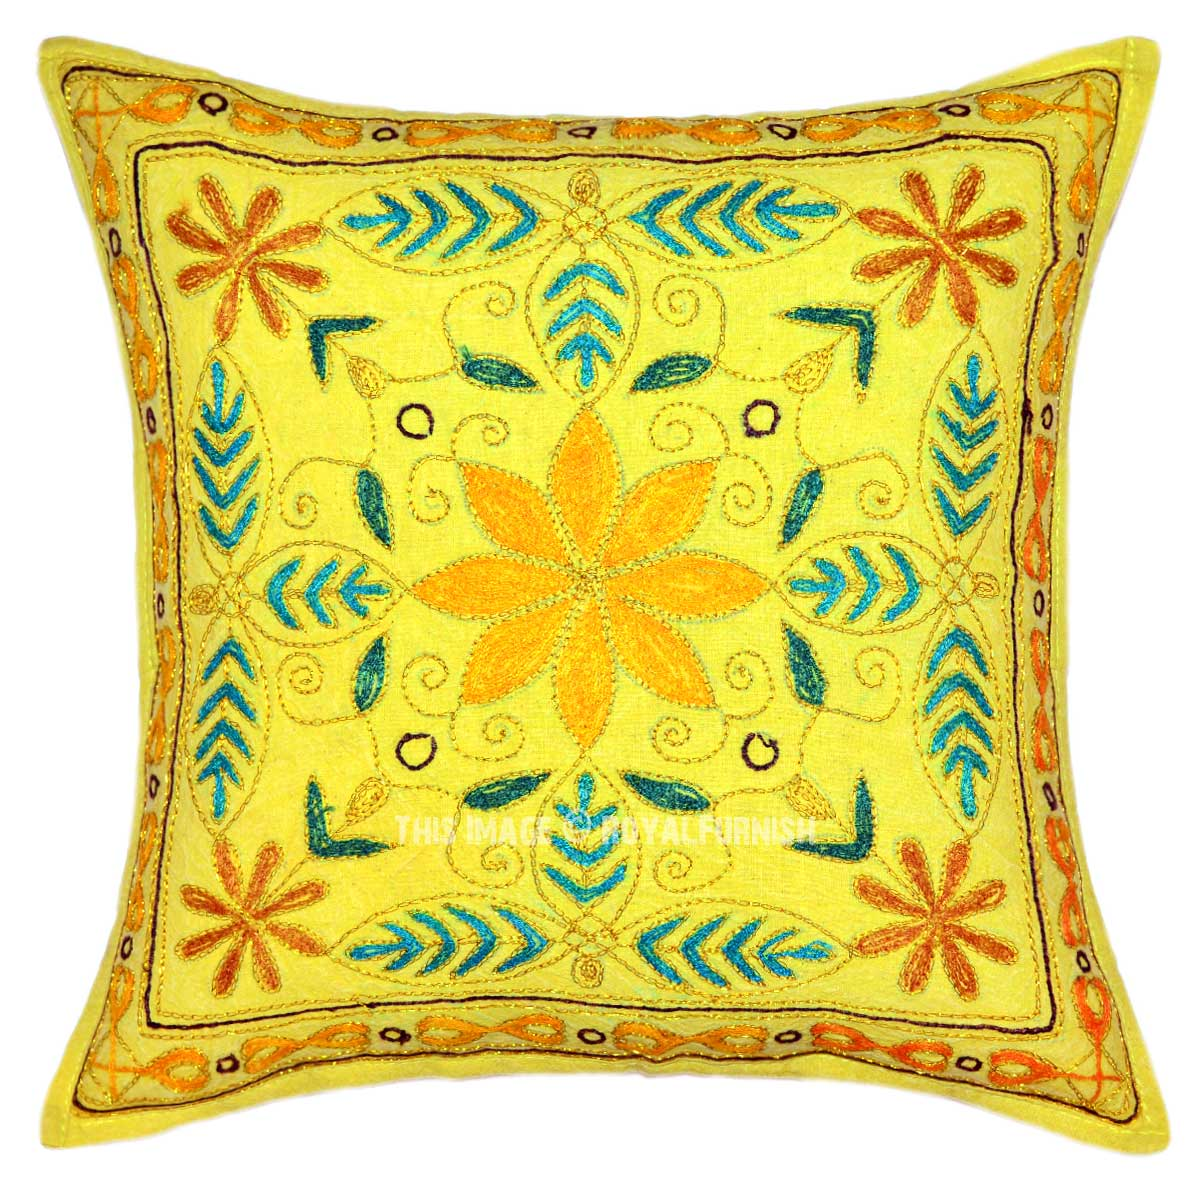 Yellow Embroidered Throw Pillows : Yellow Hand Embroidered Boho Style Throw Pillow Cover - RoyalFurnish.com